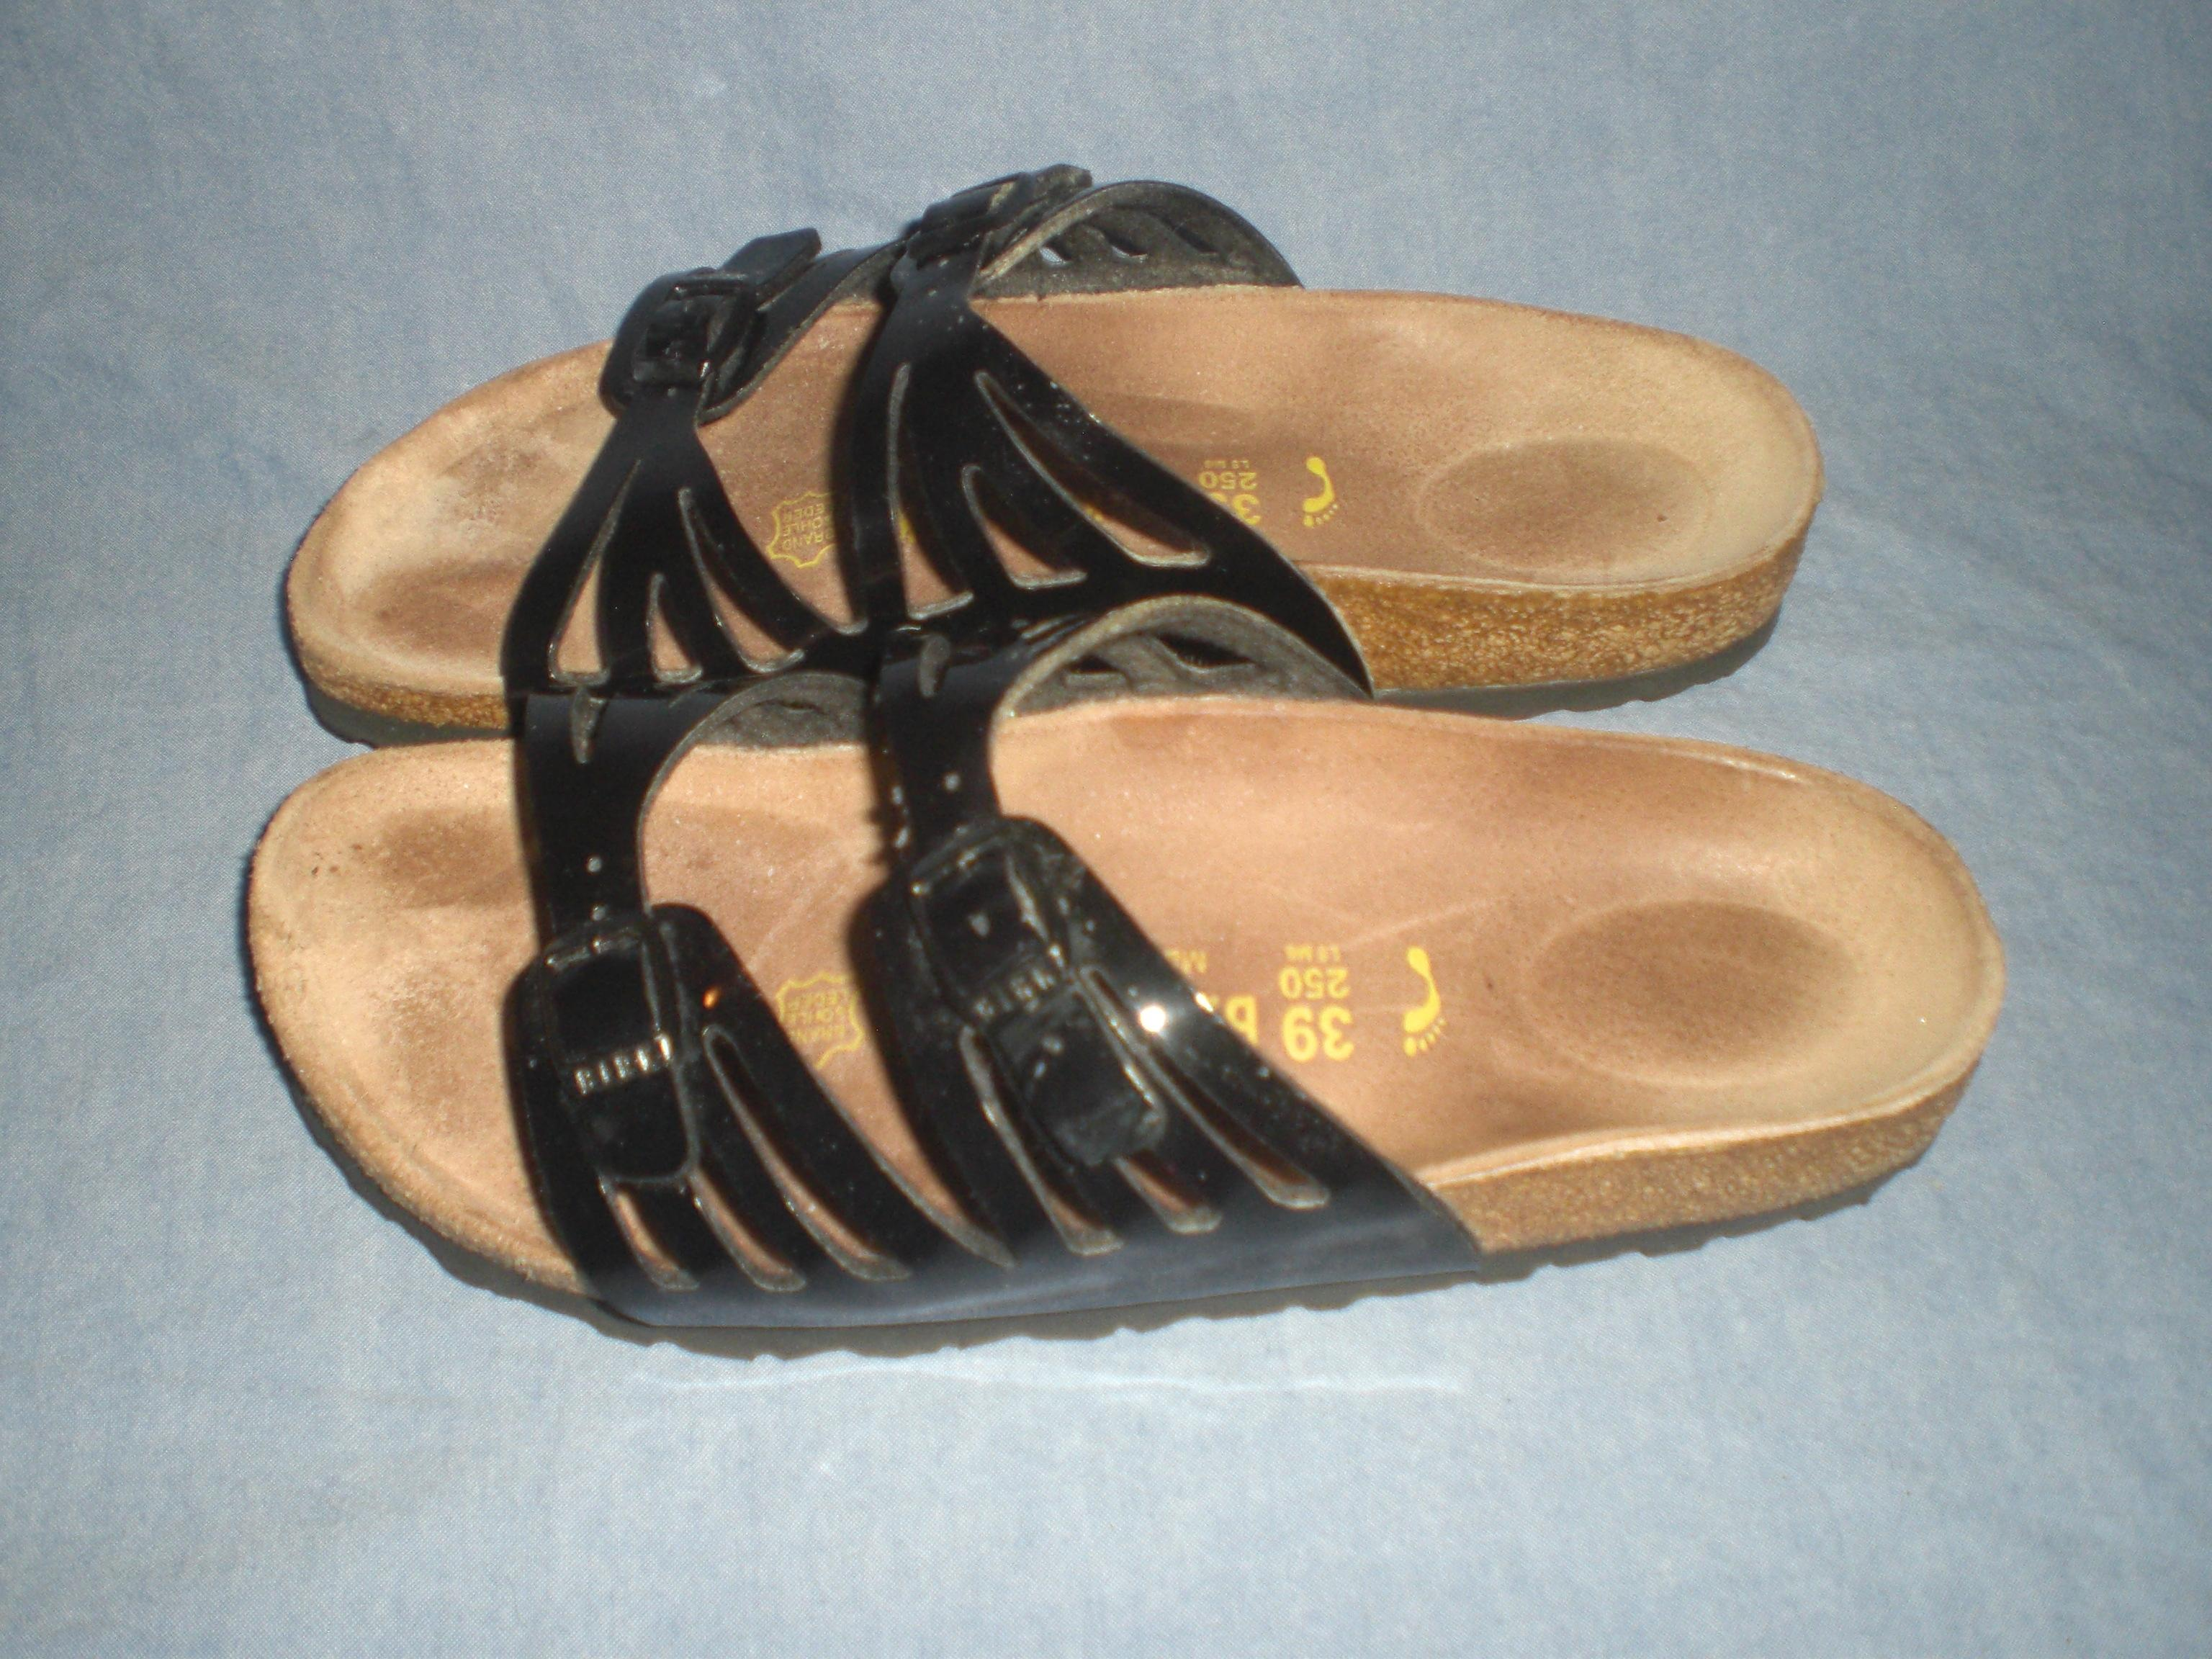 3ad6185c0 Shop birkenstock arizona eva sandal at urban outfitters today. Sort by   show  arizona. Over time